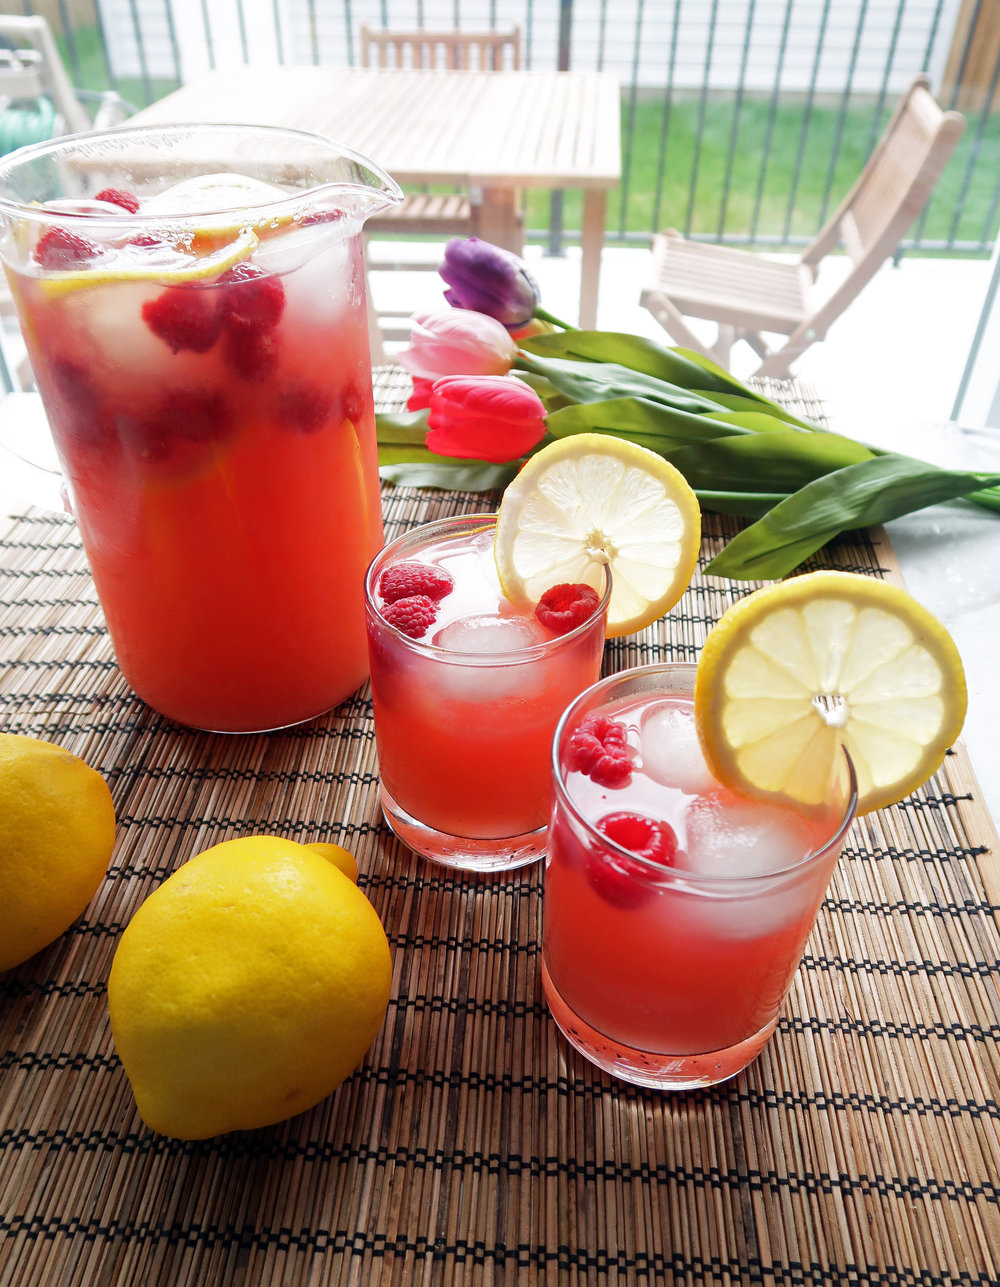 Two glasses and a pitcher full of homemade Raspberry Green Tea Lemonade with lemon slices and raspberry garnish; lawn chairs and table in the background.